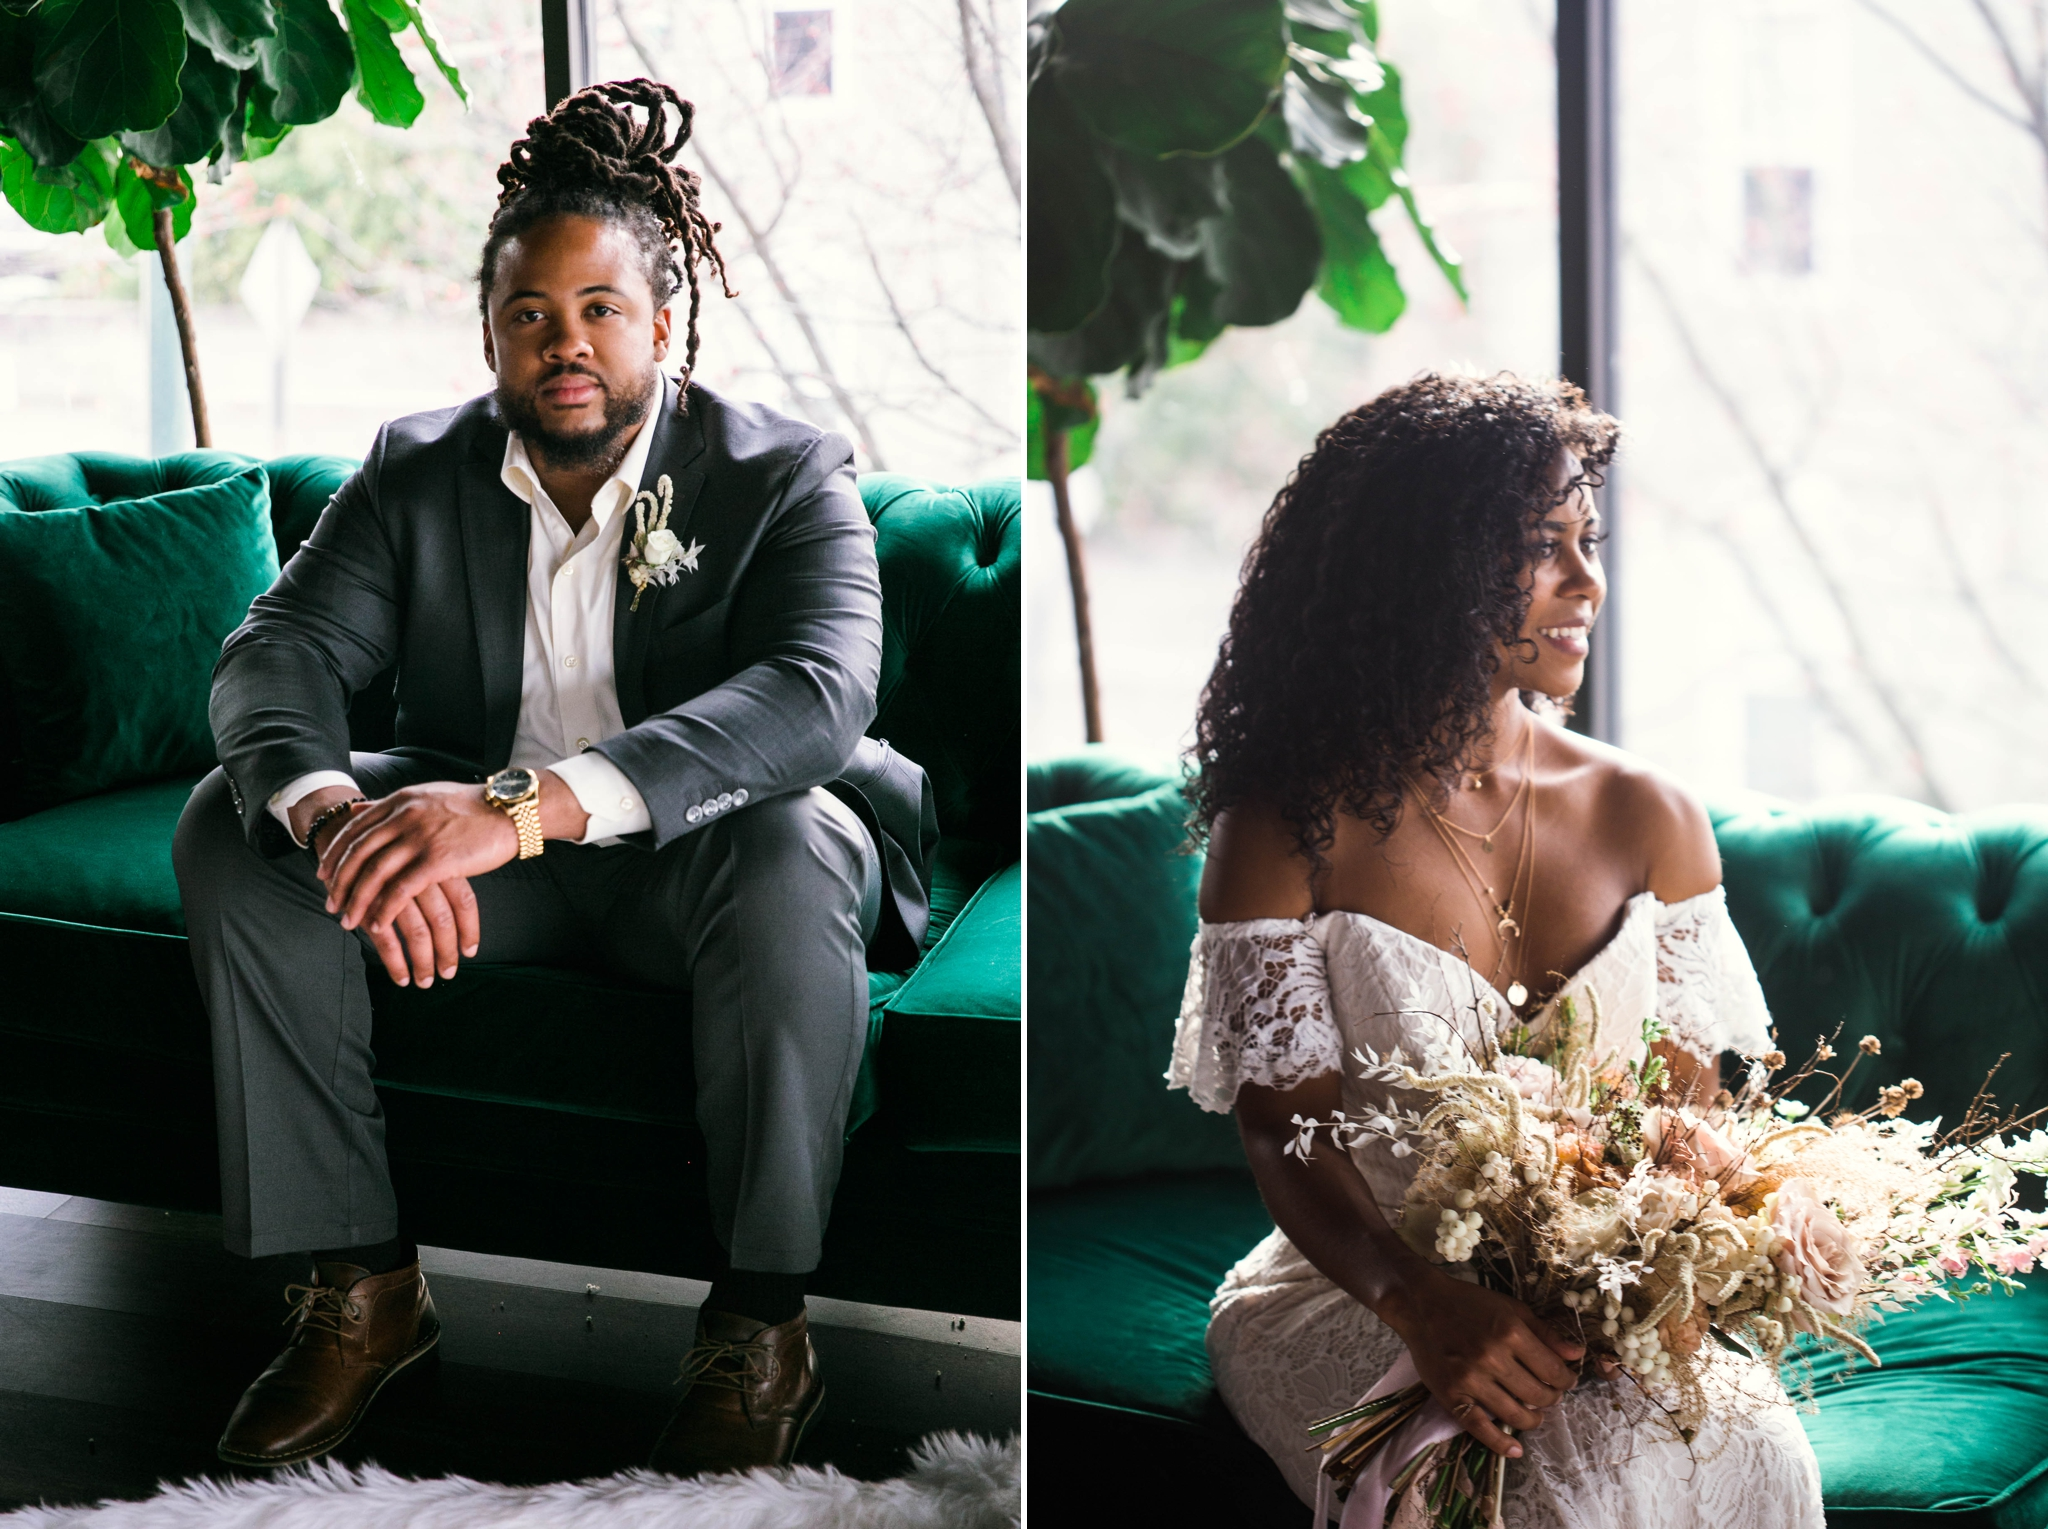 Indoor Natural light portrait of a black bride  in a boho wedding dress and her groom sitting on an emerald tufted sofa - laughing and having fun with each other- flowers in natural african american hair - oahu hawaii wedding photographer